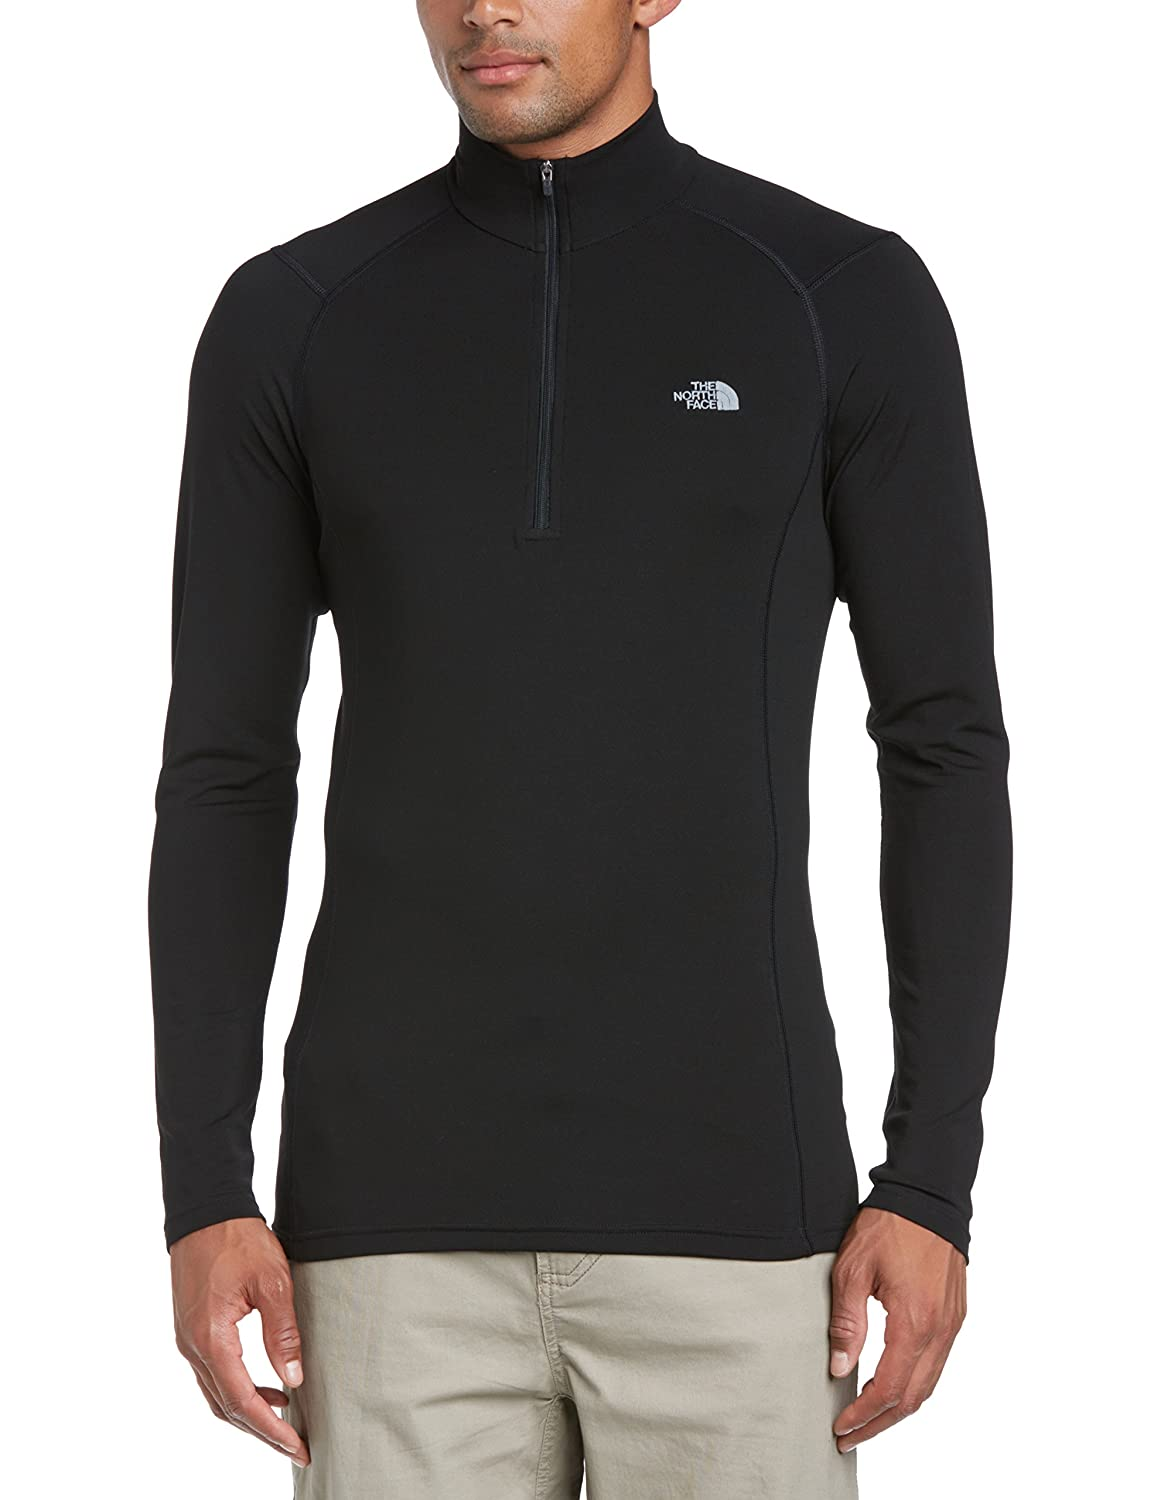 61a540939 The North Face Men's Warm Crew Neck Long Sleeve Base Layer: Amazon ...